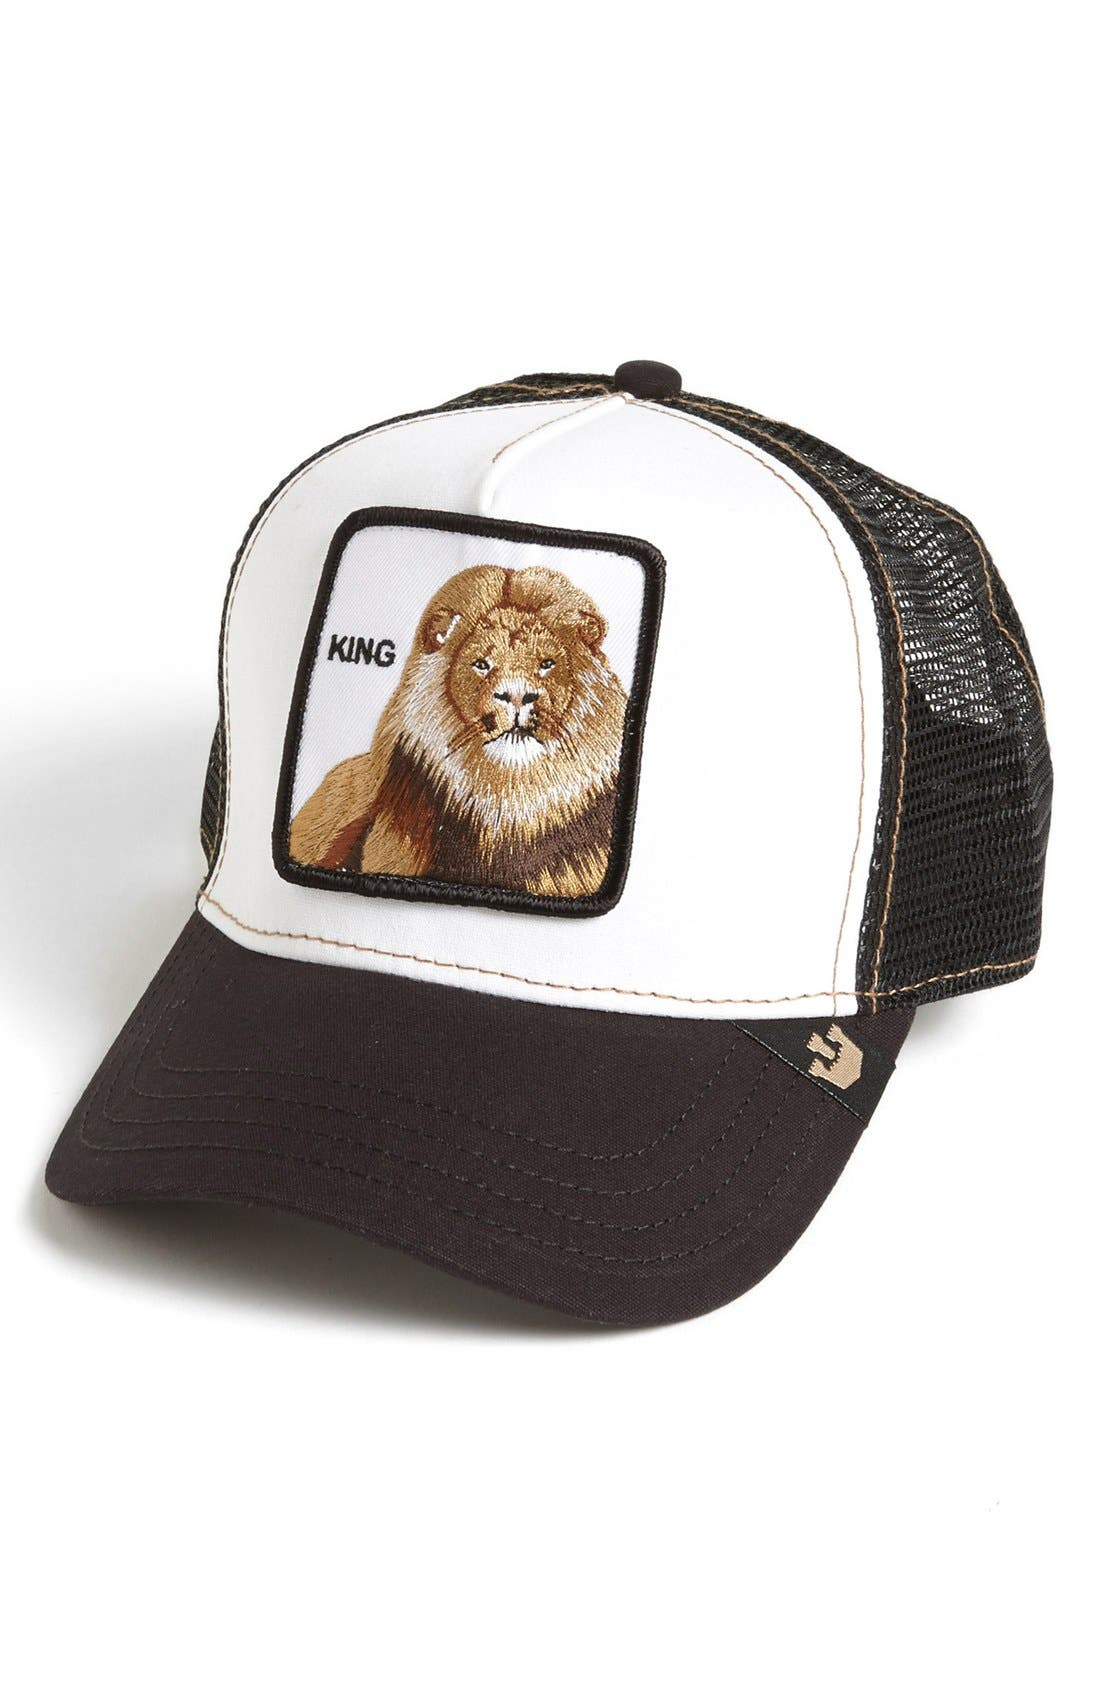 Alternate Image 1 Selected - Goorin Brothers 'Animal Farm - King' Trucker Hat